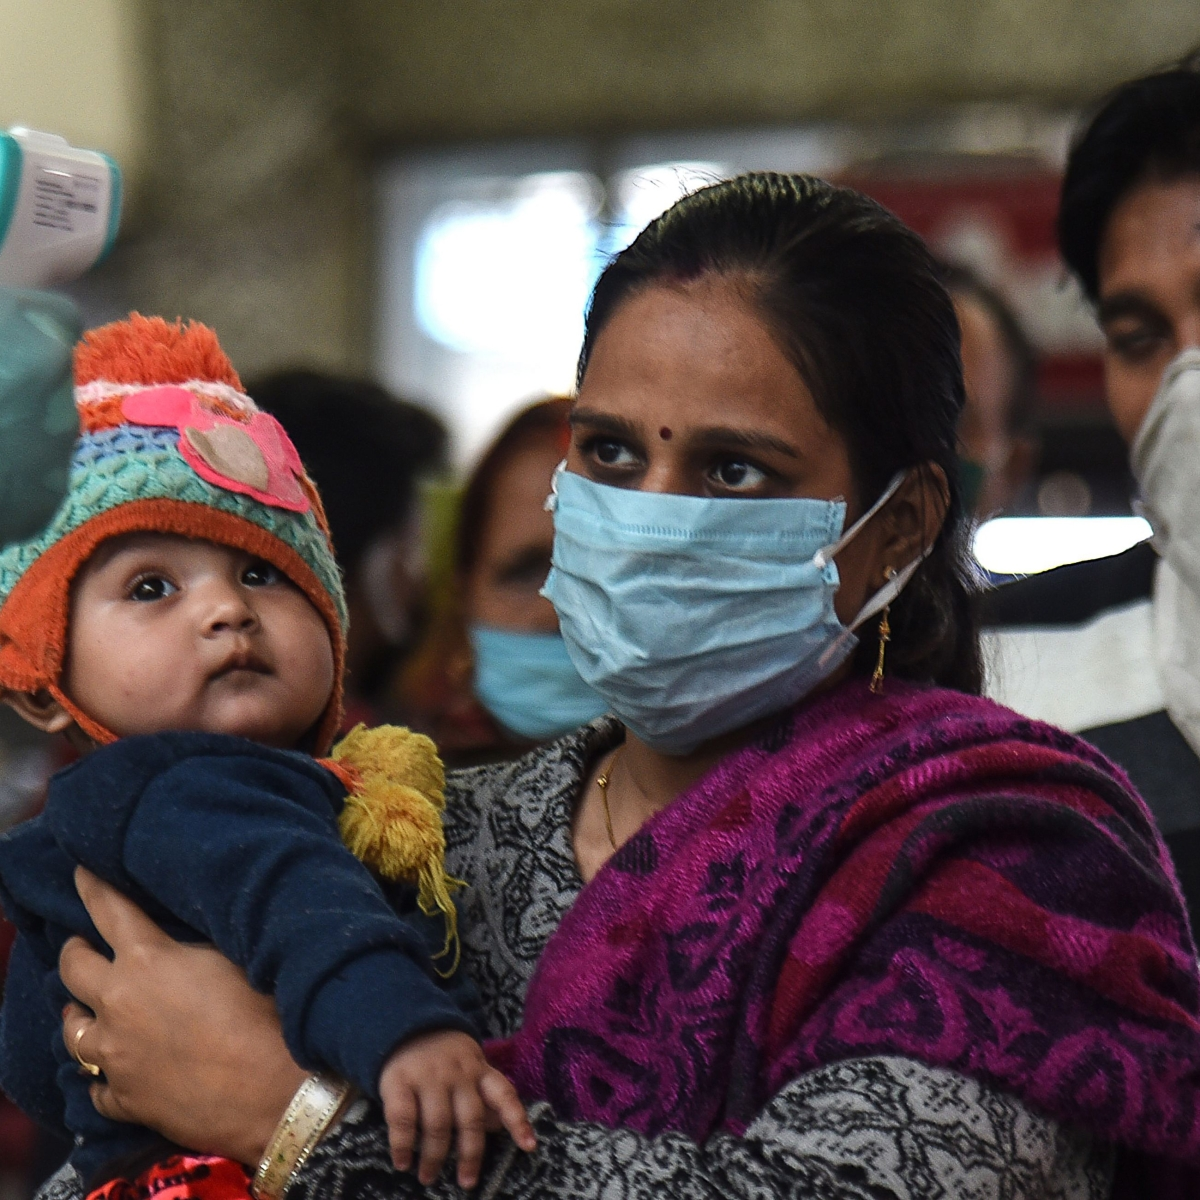 COVID-19 latest updates: India records 16,946 new cases, tally rises to 1,05,12,093